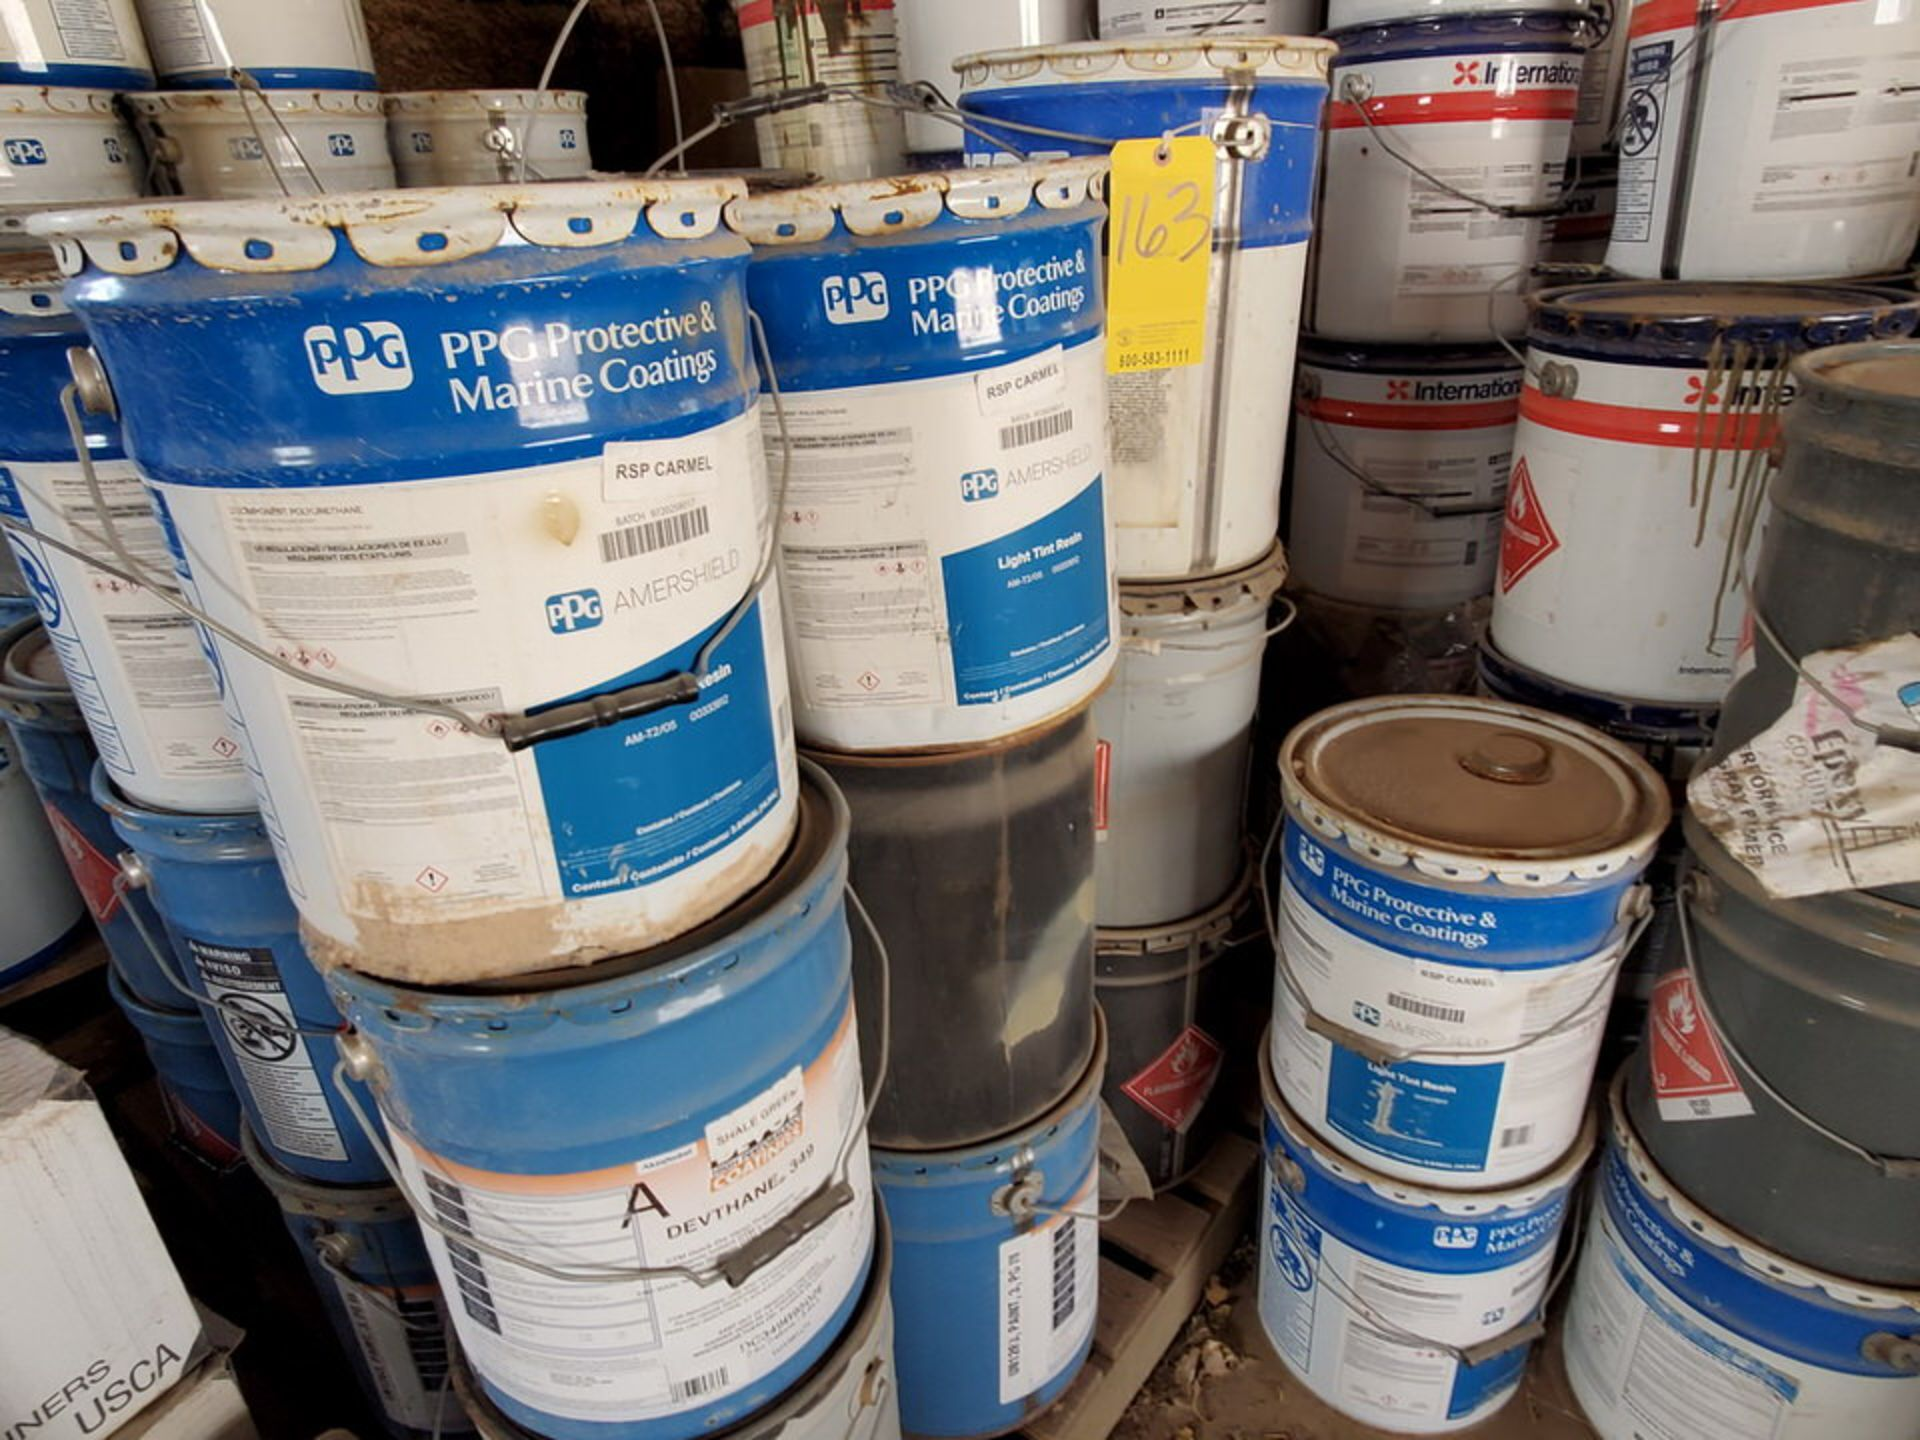 Assorted Paints & Marine Coatings Mfg's: PPG, Intl. & Other - Image 7 of 10